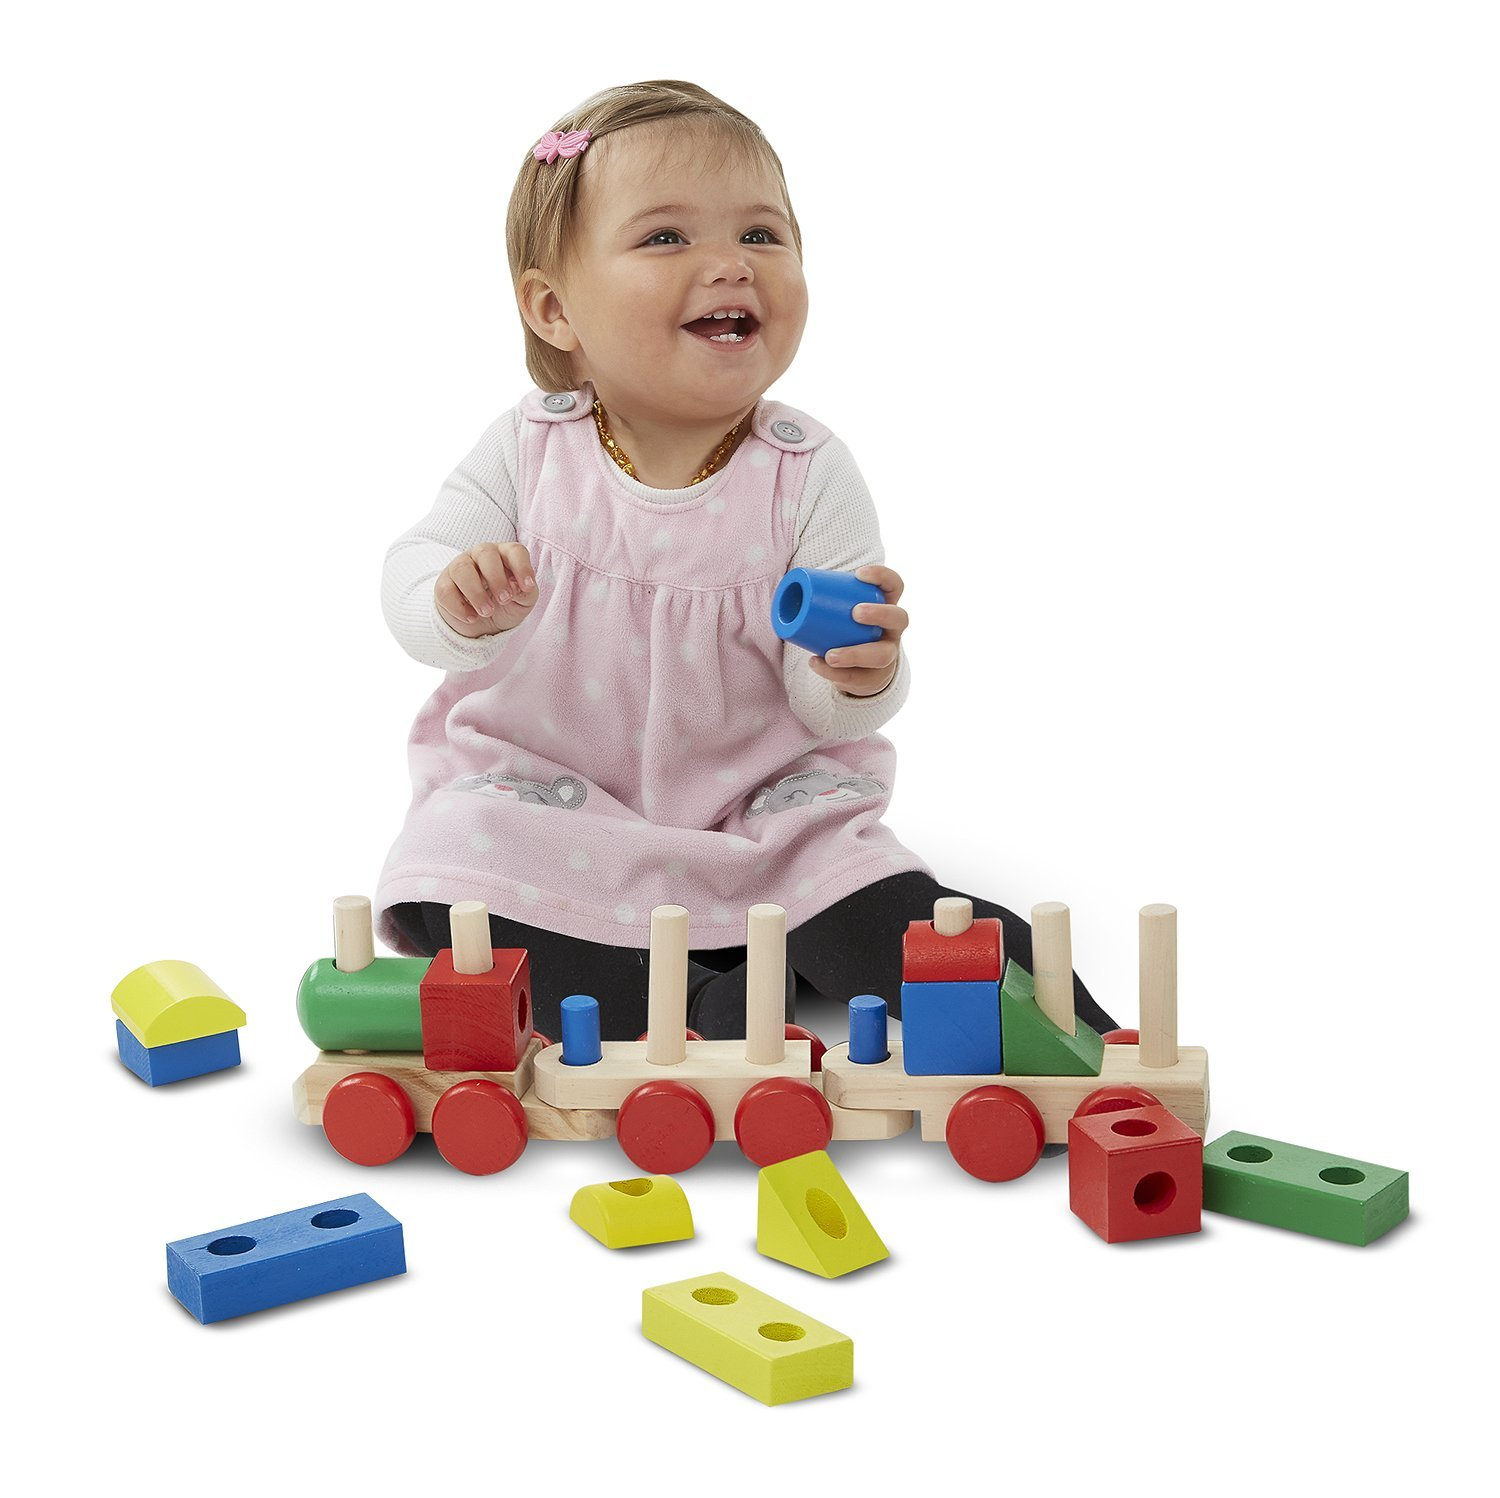 Amazon Melissa & Doug Stacking Train Classic Wooden Toddler